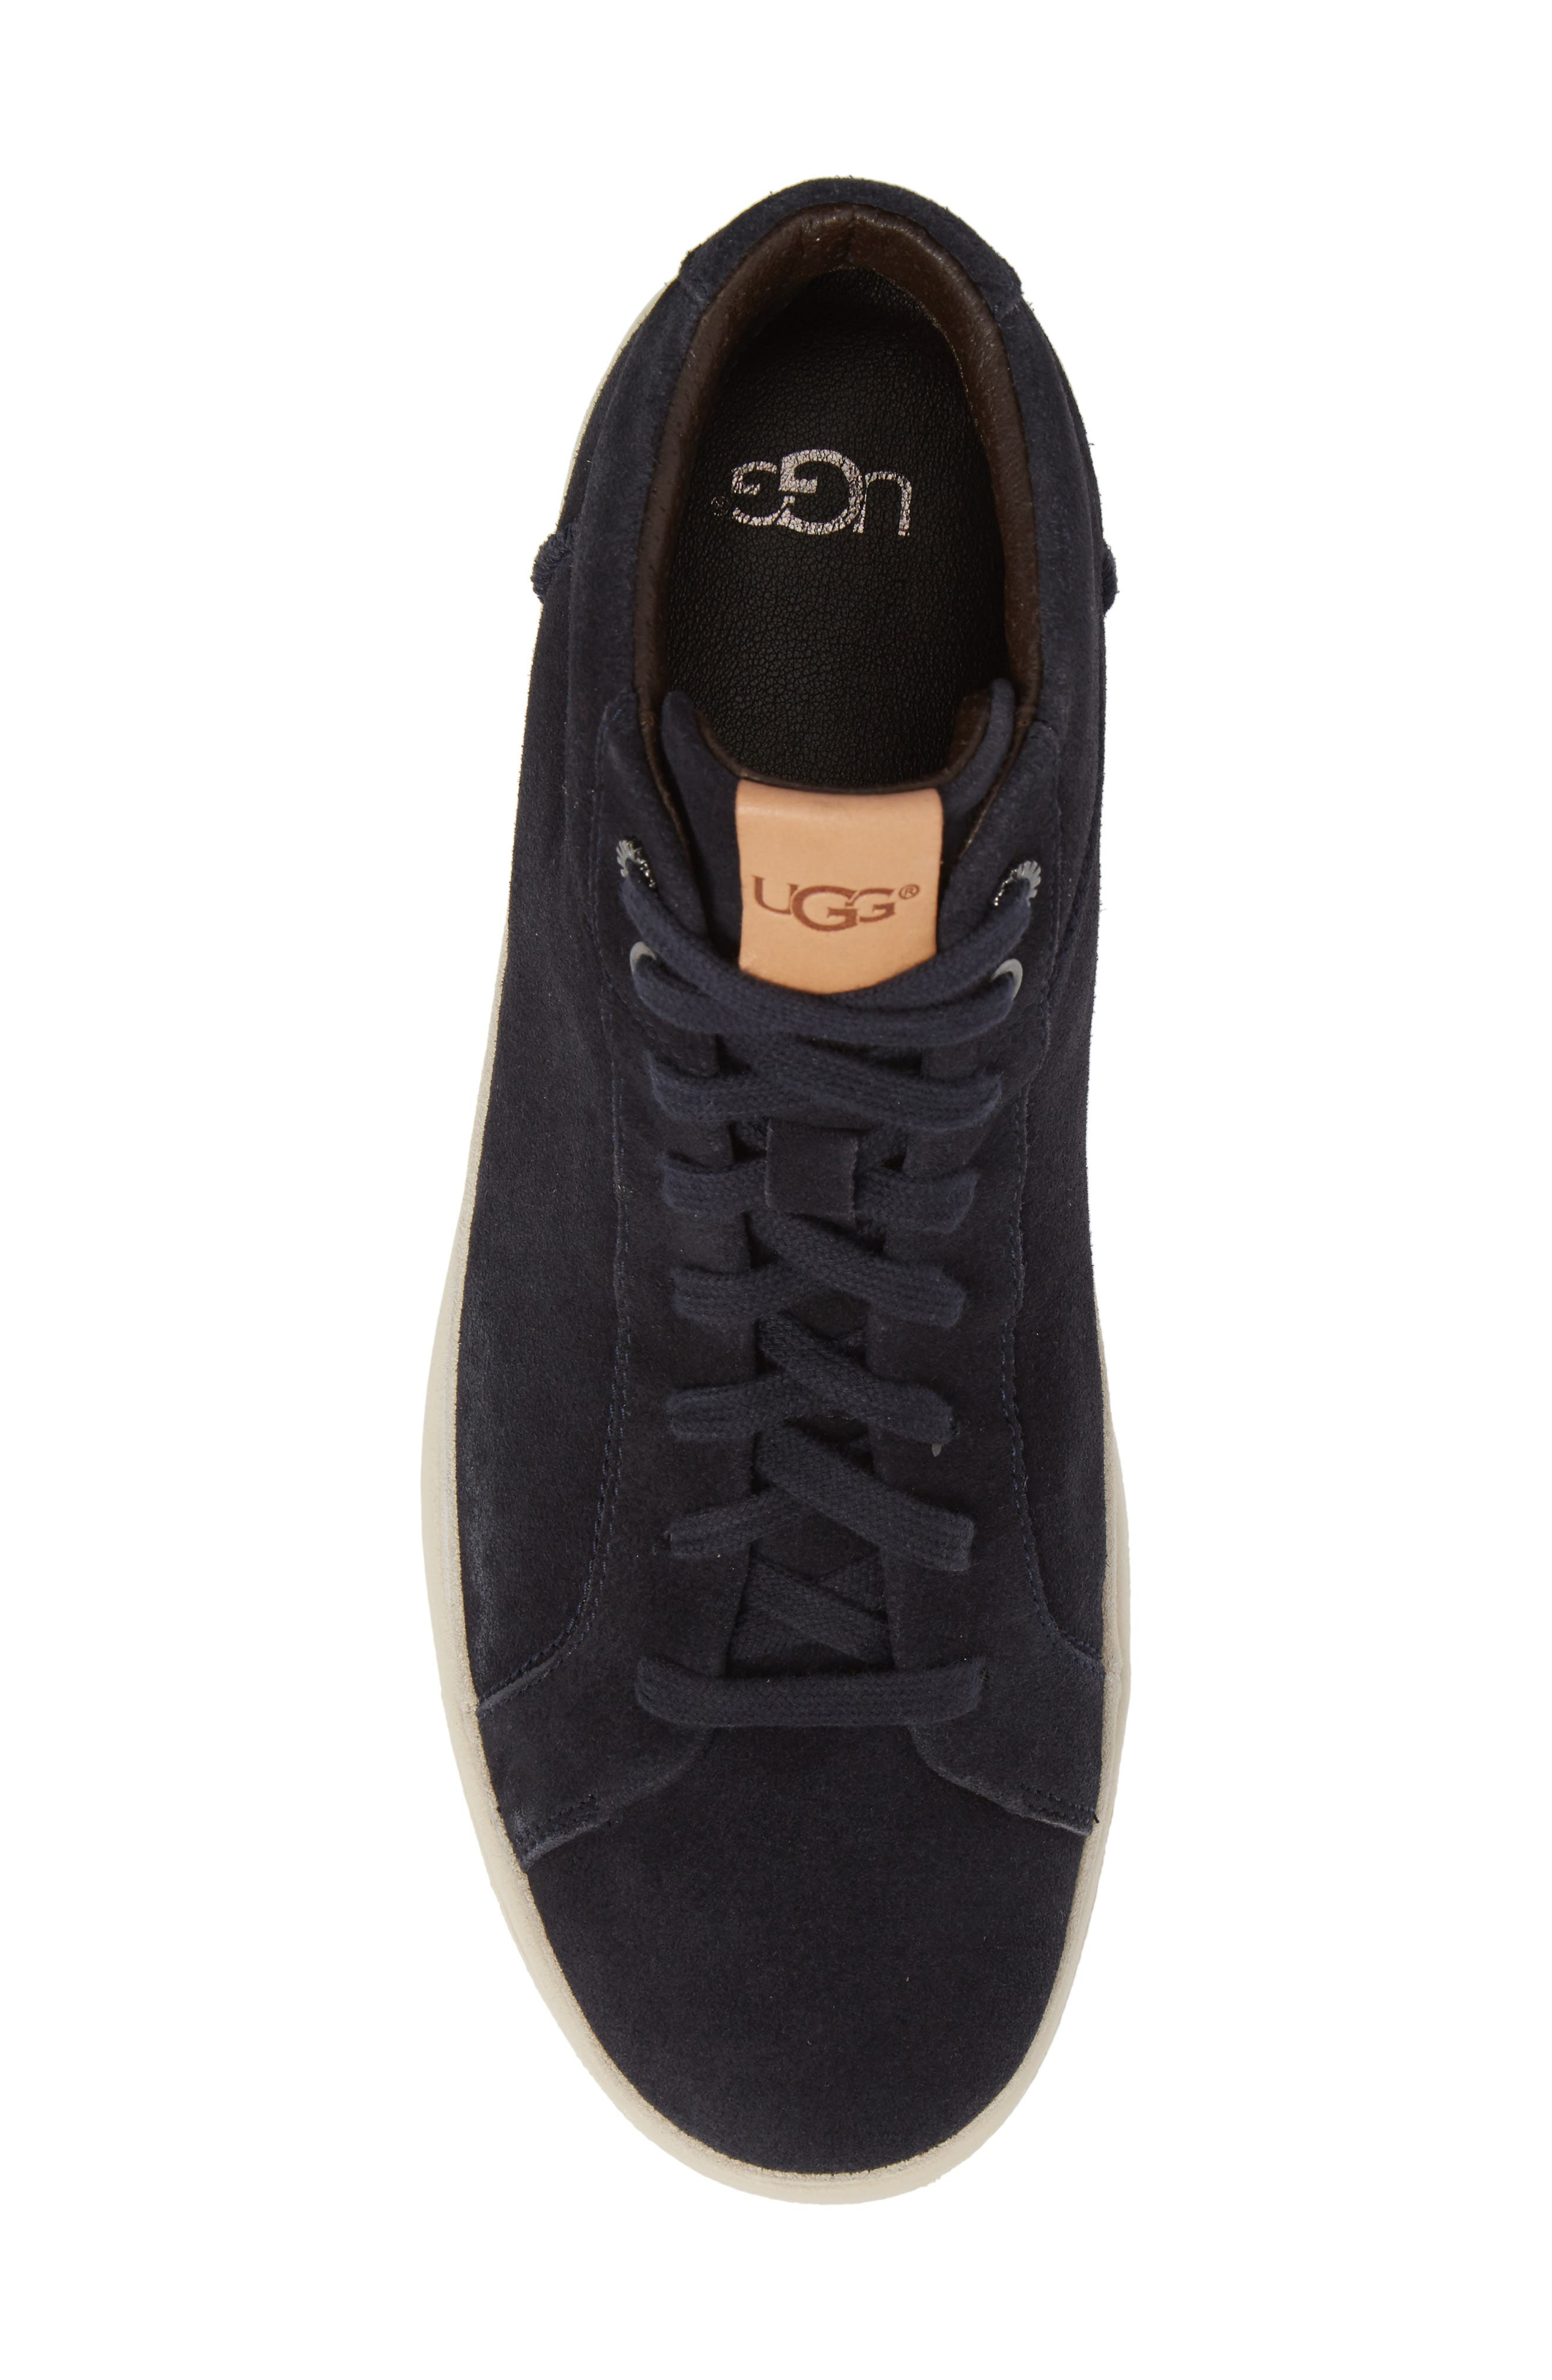 Cali High Top Sneaker,                             Alternate thumbnail 5, color,                             NAVY LEATHER